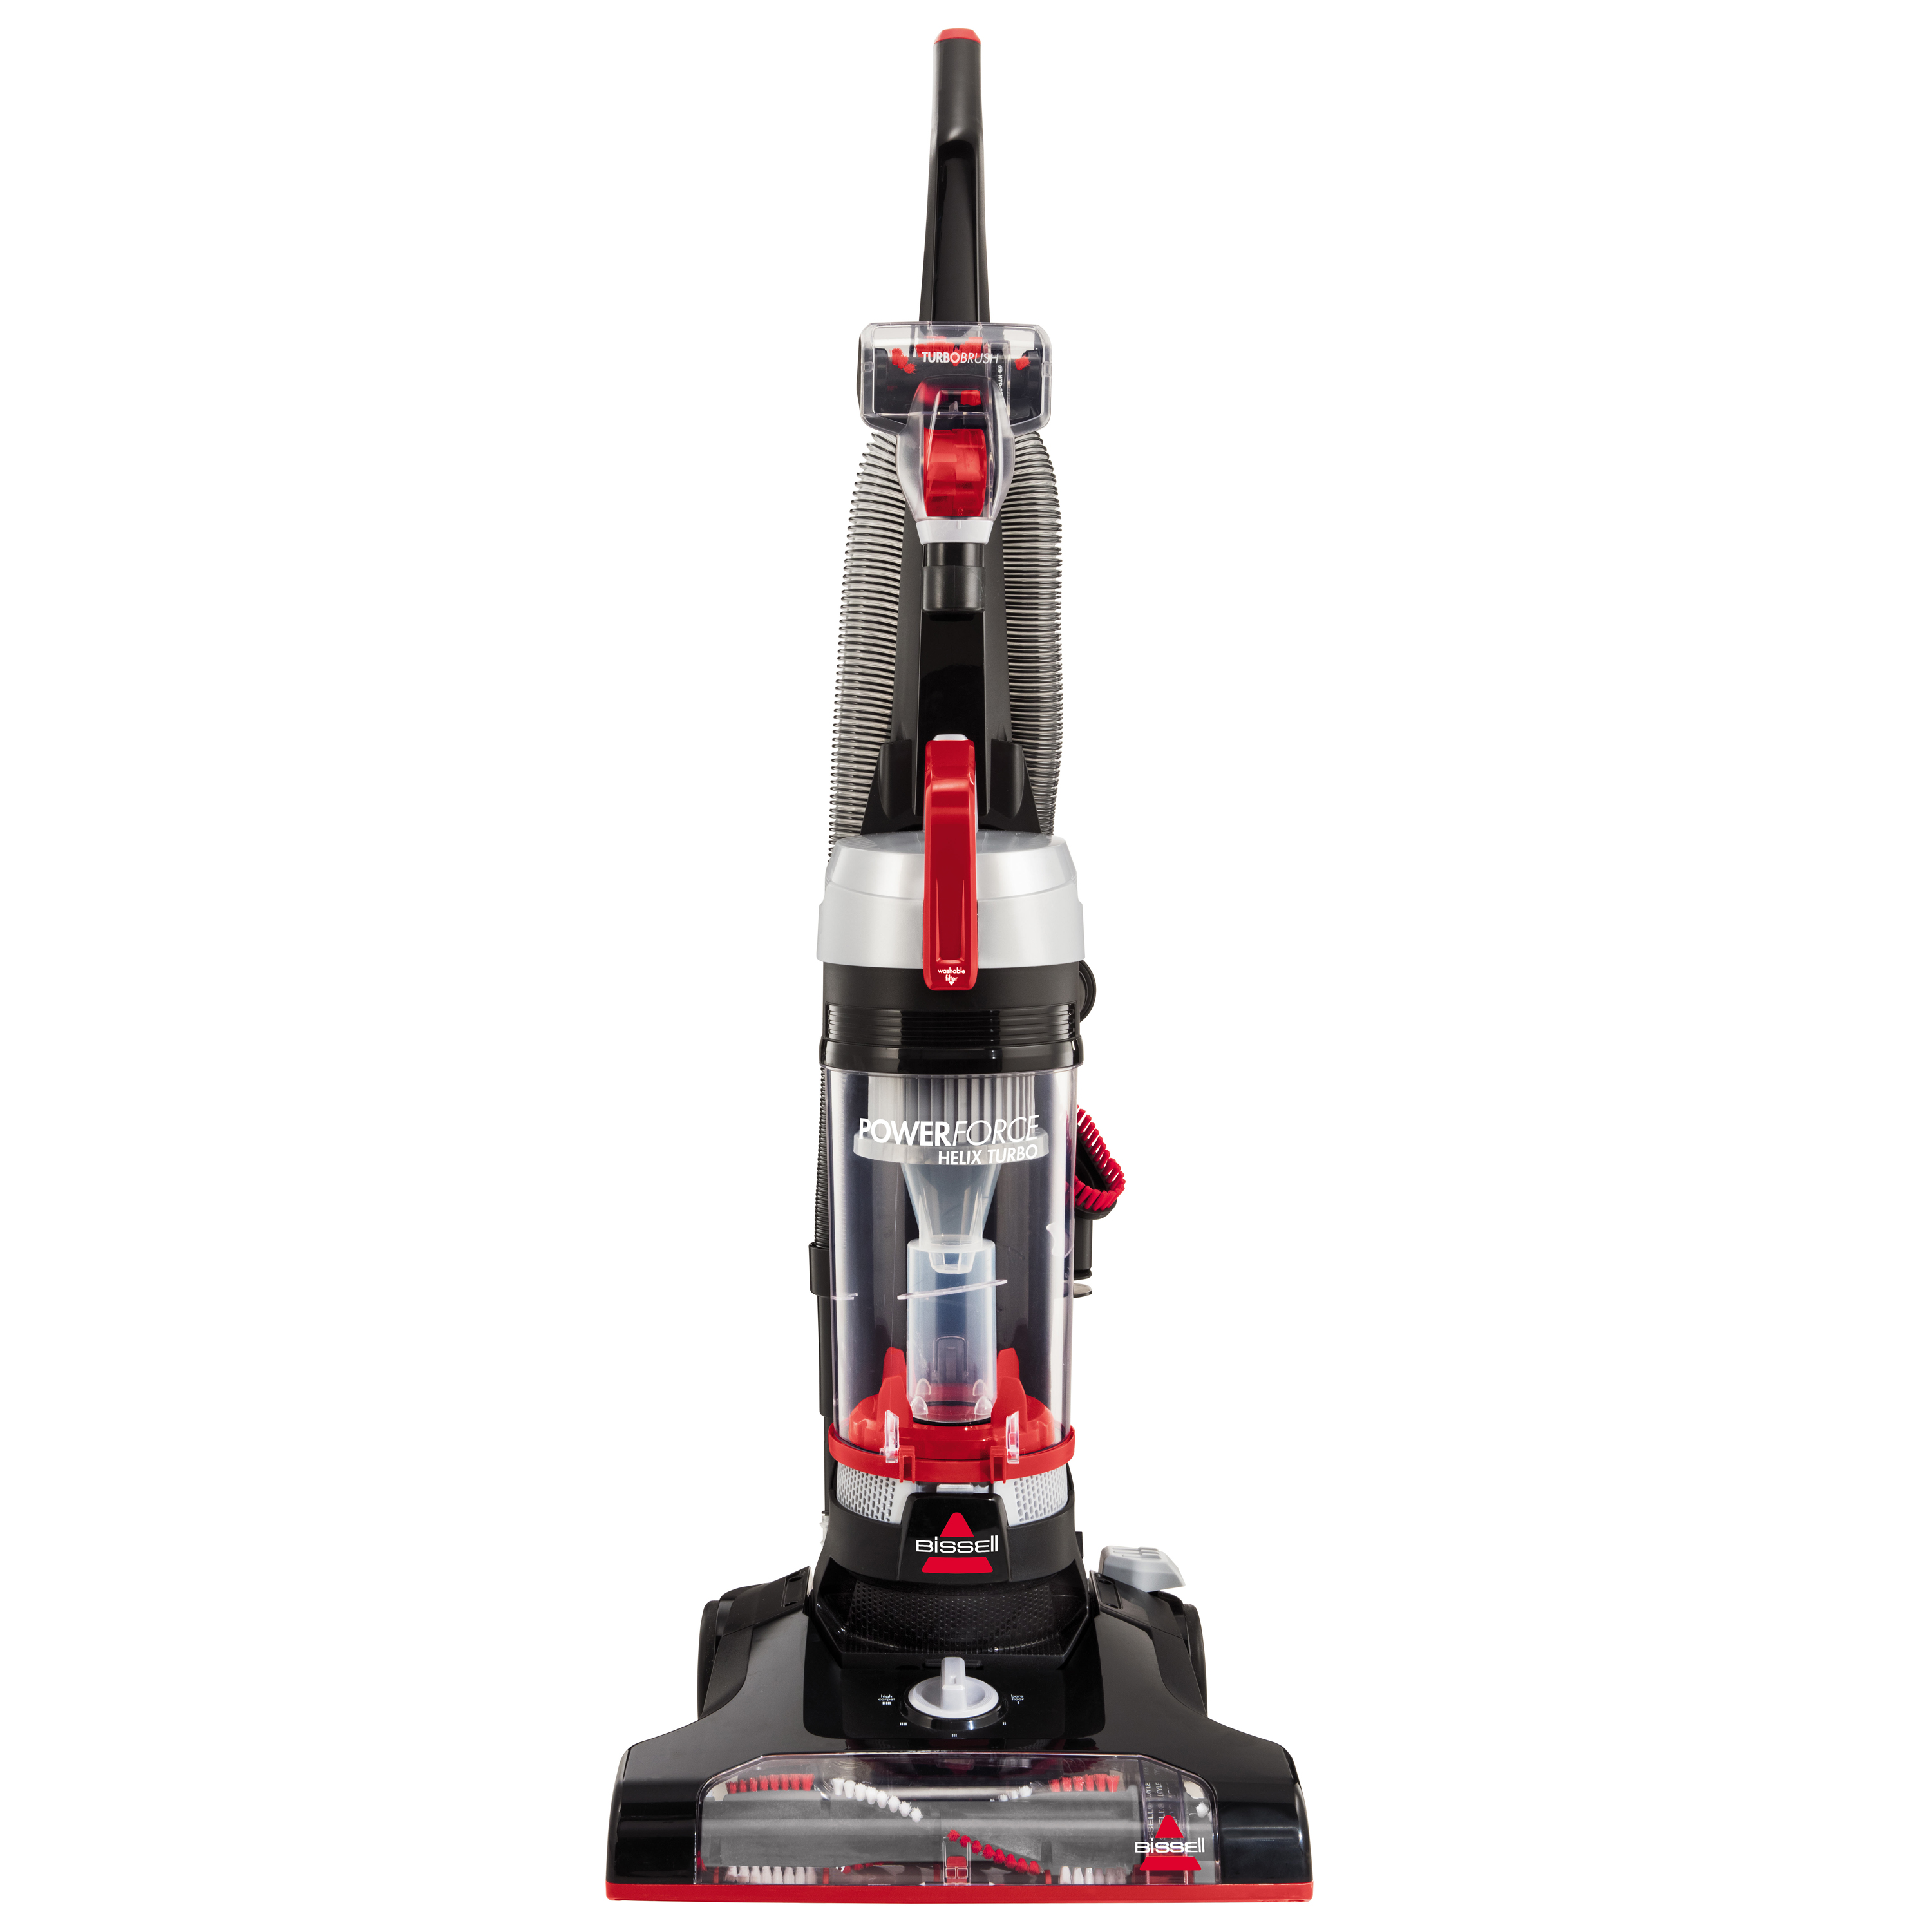 Walmart – BISSELL PowerForce Helix Turbo Bagless Vacuum Only $59.00 (Reg $74.00) + Free Shipping